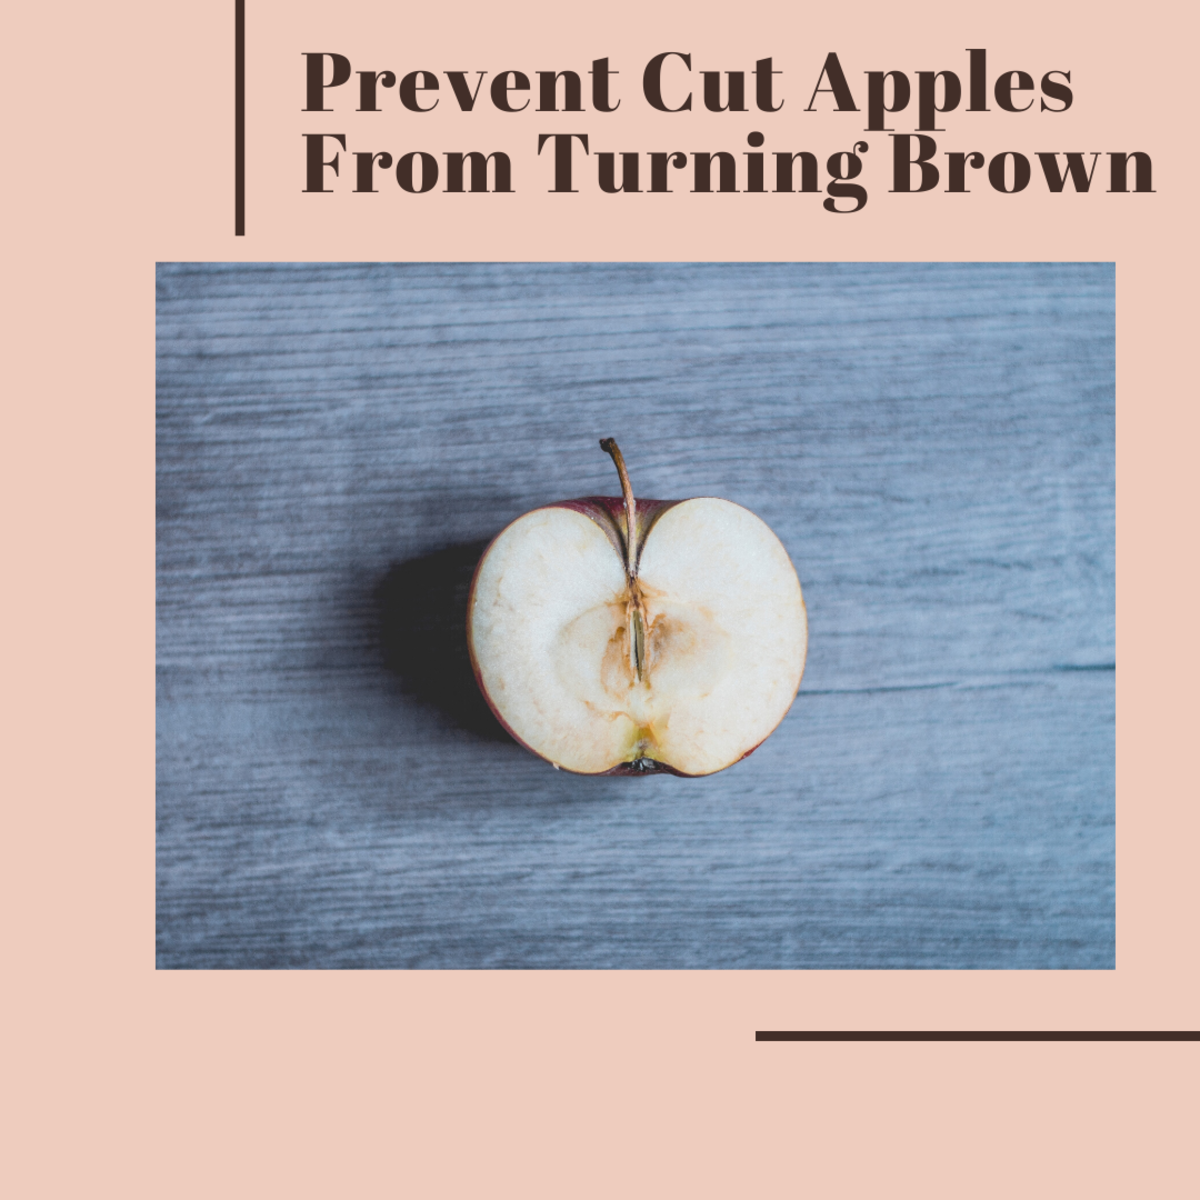 5 Ways to Prevent Cut Apples From Turning Brown